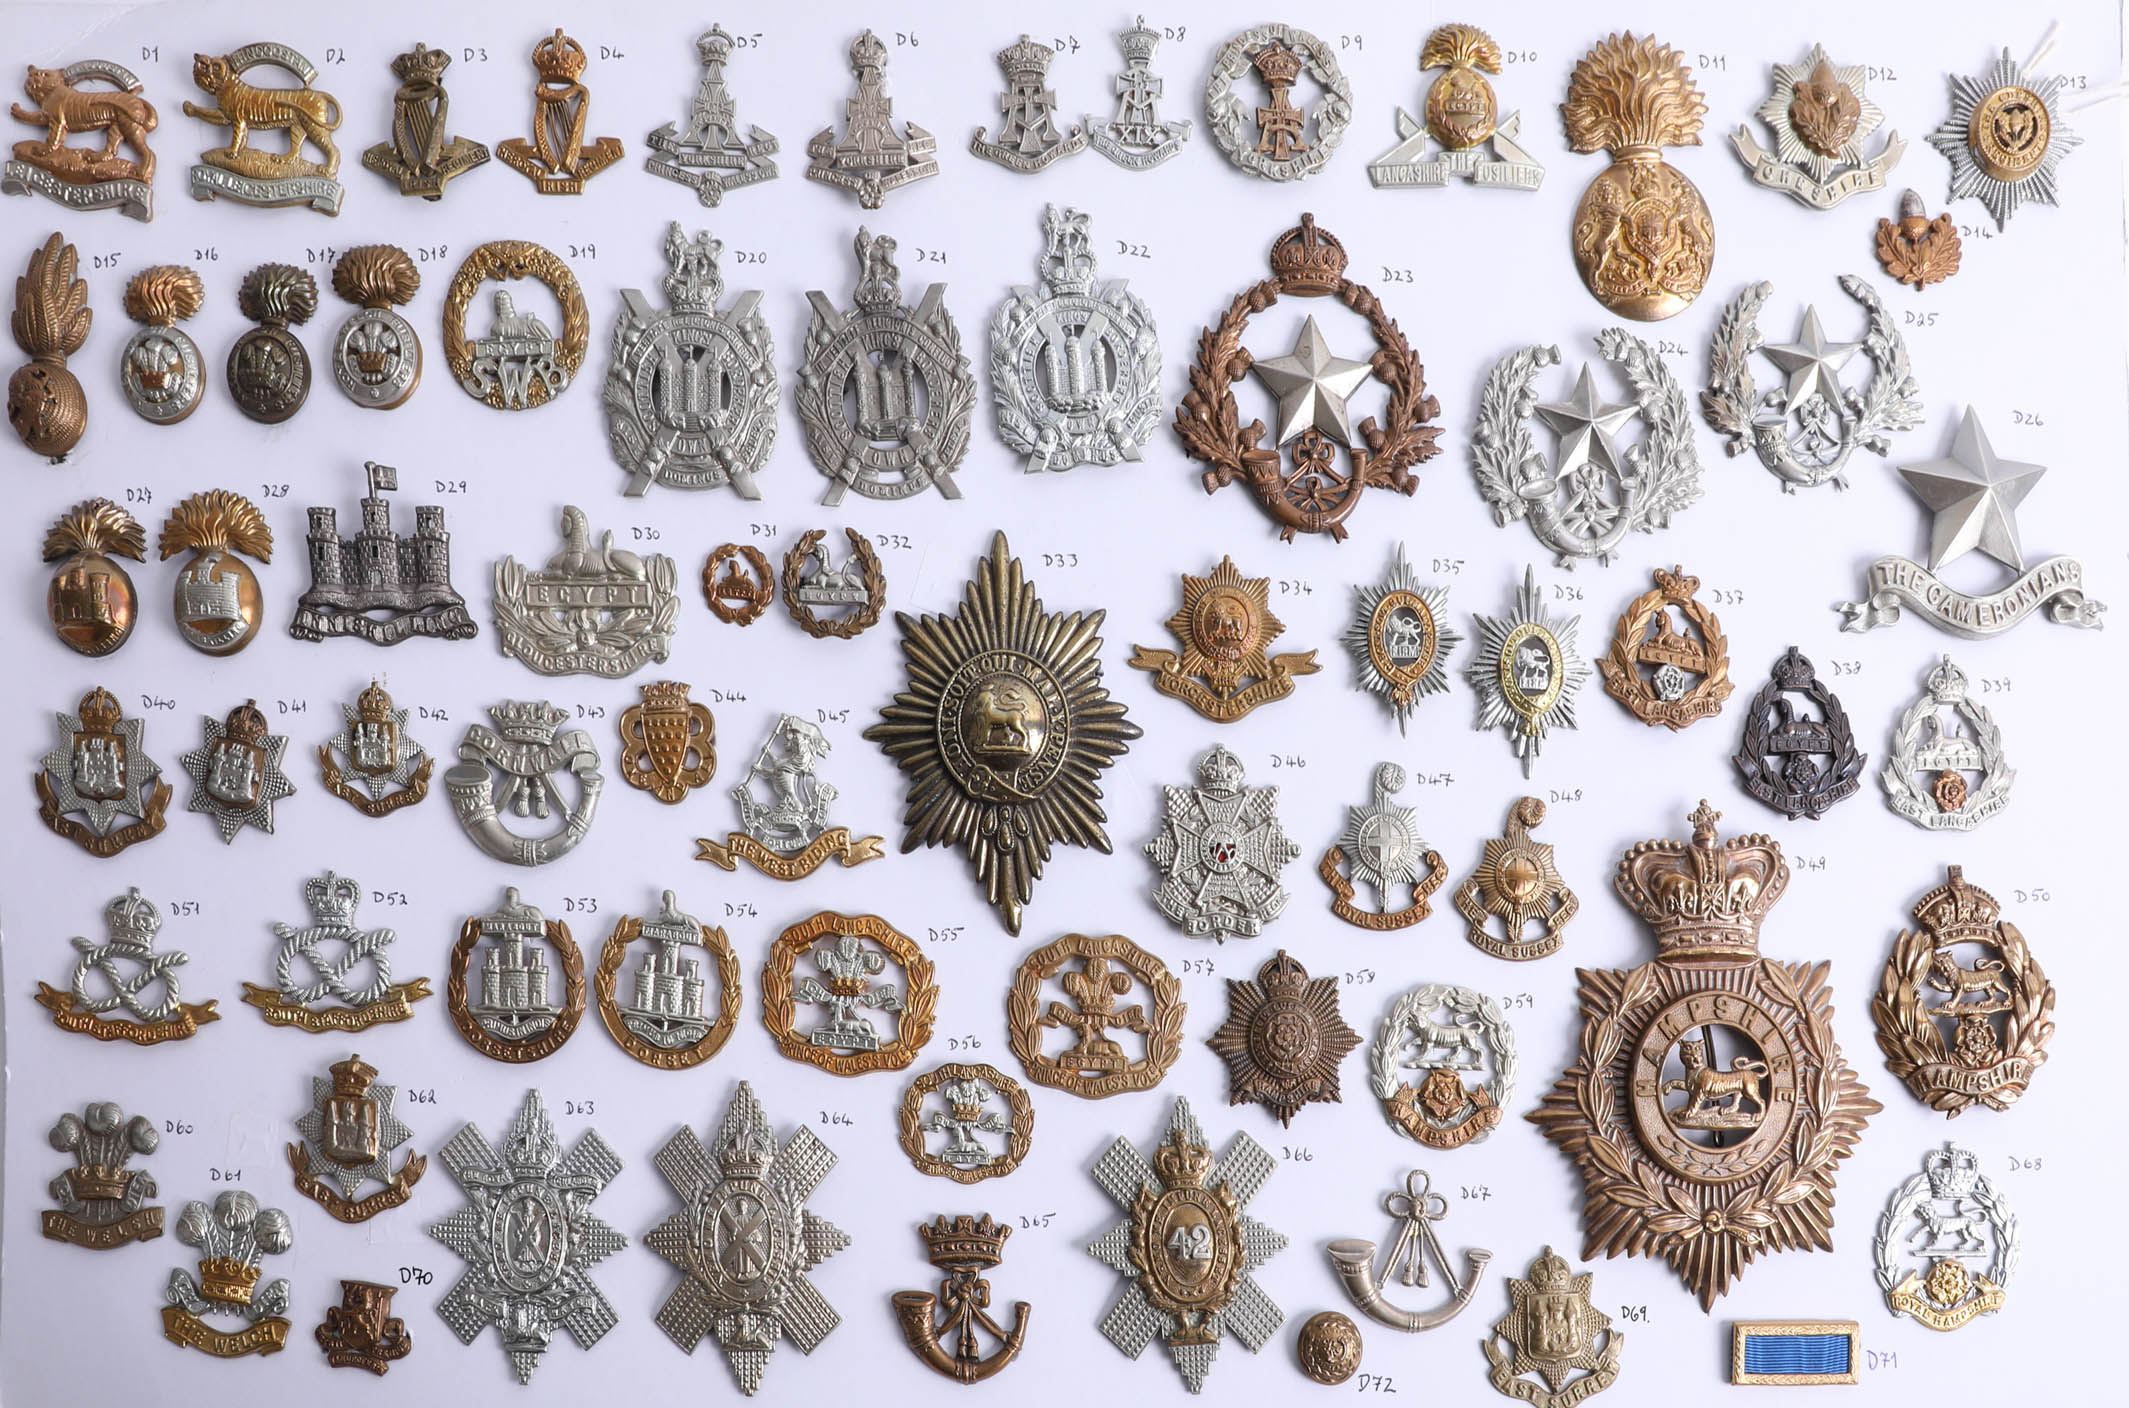 Lot 004 - A collection of approx. 72 military cap badges, including Royal Irish, Royal Scots and Royal Welsh